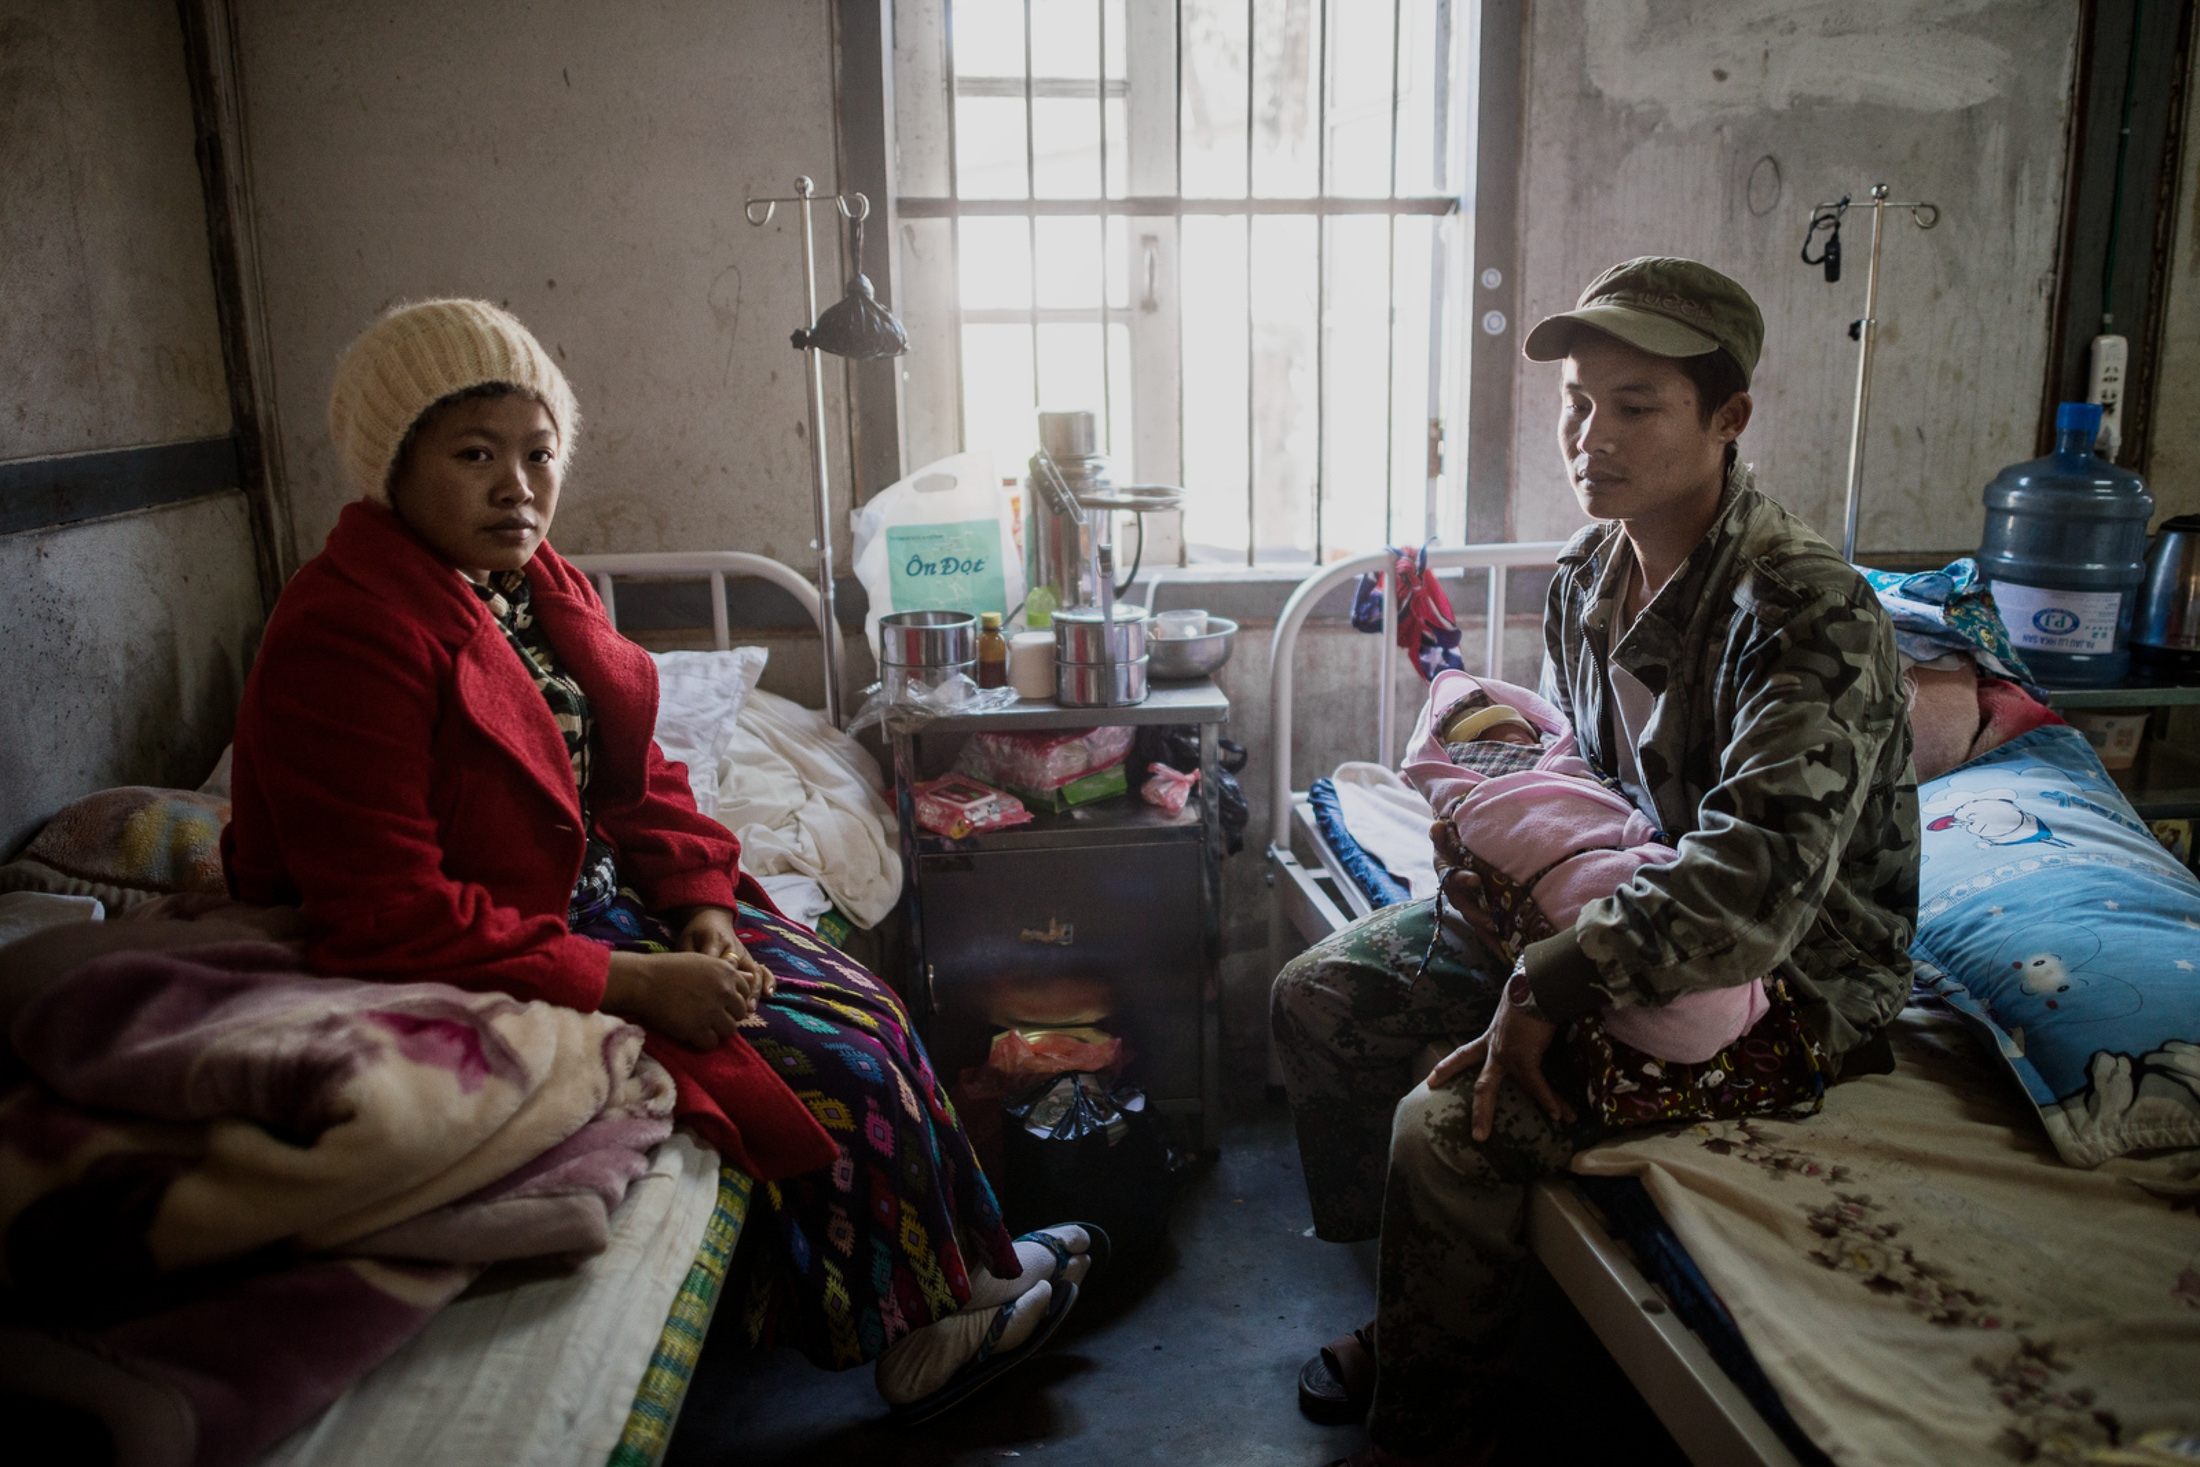 Gun Htang Hkawn Nan and Lahtaw Naw Ja with their newborn second son, Lahtaw Seng Naw Sut, at the Laiza Civil Hospital Maternity Ward. Both parents are employed in the Kachin Independence Army, the armed wing of the Kachin Independence Organisation, which have been fighting for autonomy in Kachin for about 60 years. Hkwan Nan says she is split about her children taking part in the fighting. – As a mother i worry about my sons being in danger, but at the same time, i would be proud for them fighting for our people and country.